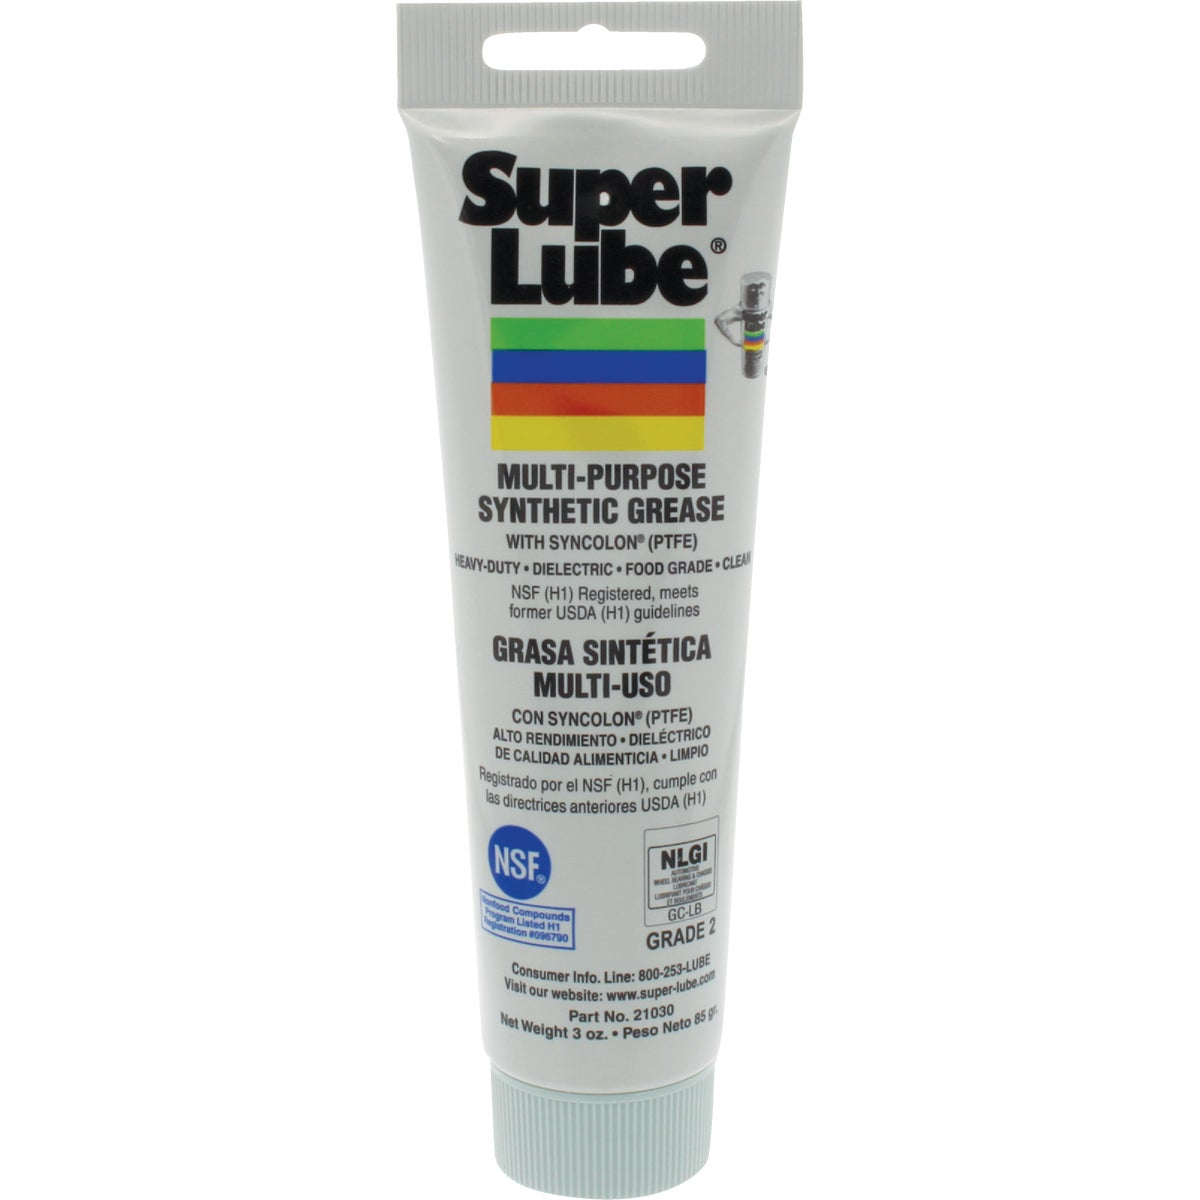 3OZ MULTIPURP LUBRICANT - 21030 by Synco Div Superlube